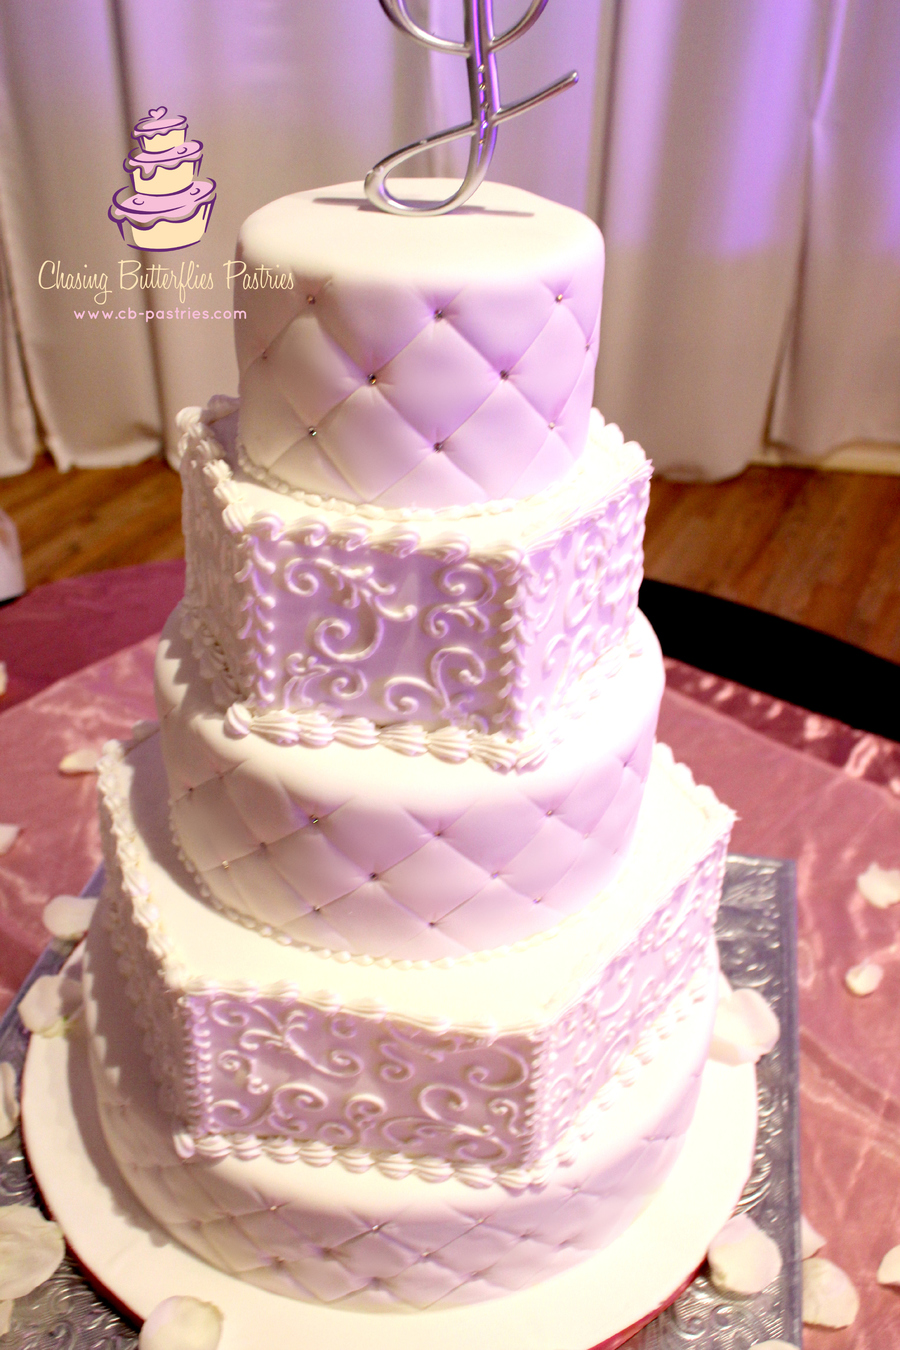 All White 5 Tier Wedding Cake With Quilting Detail And Hand Piped ...